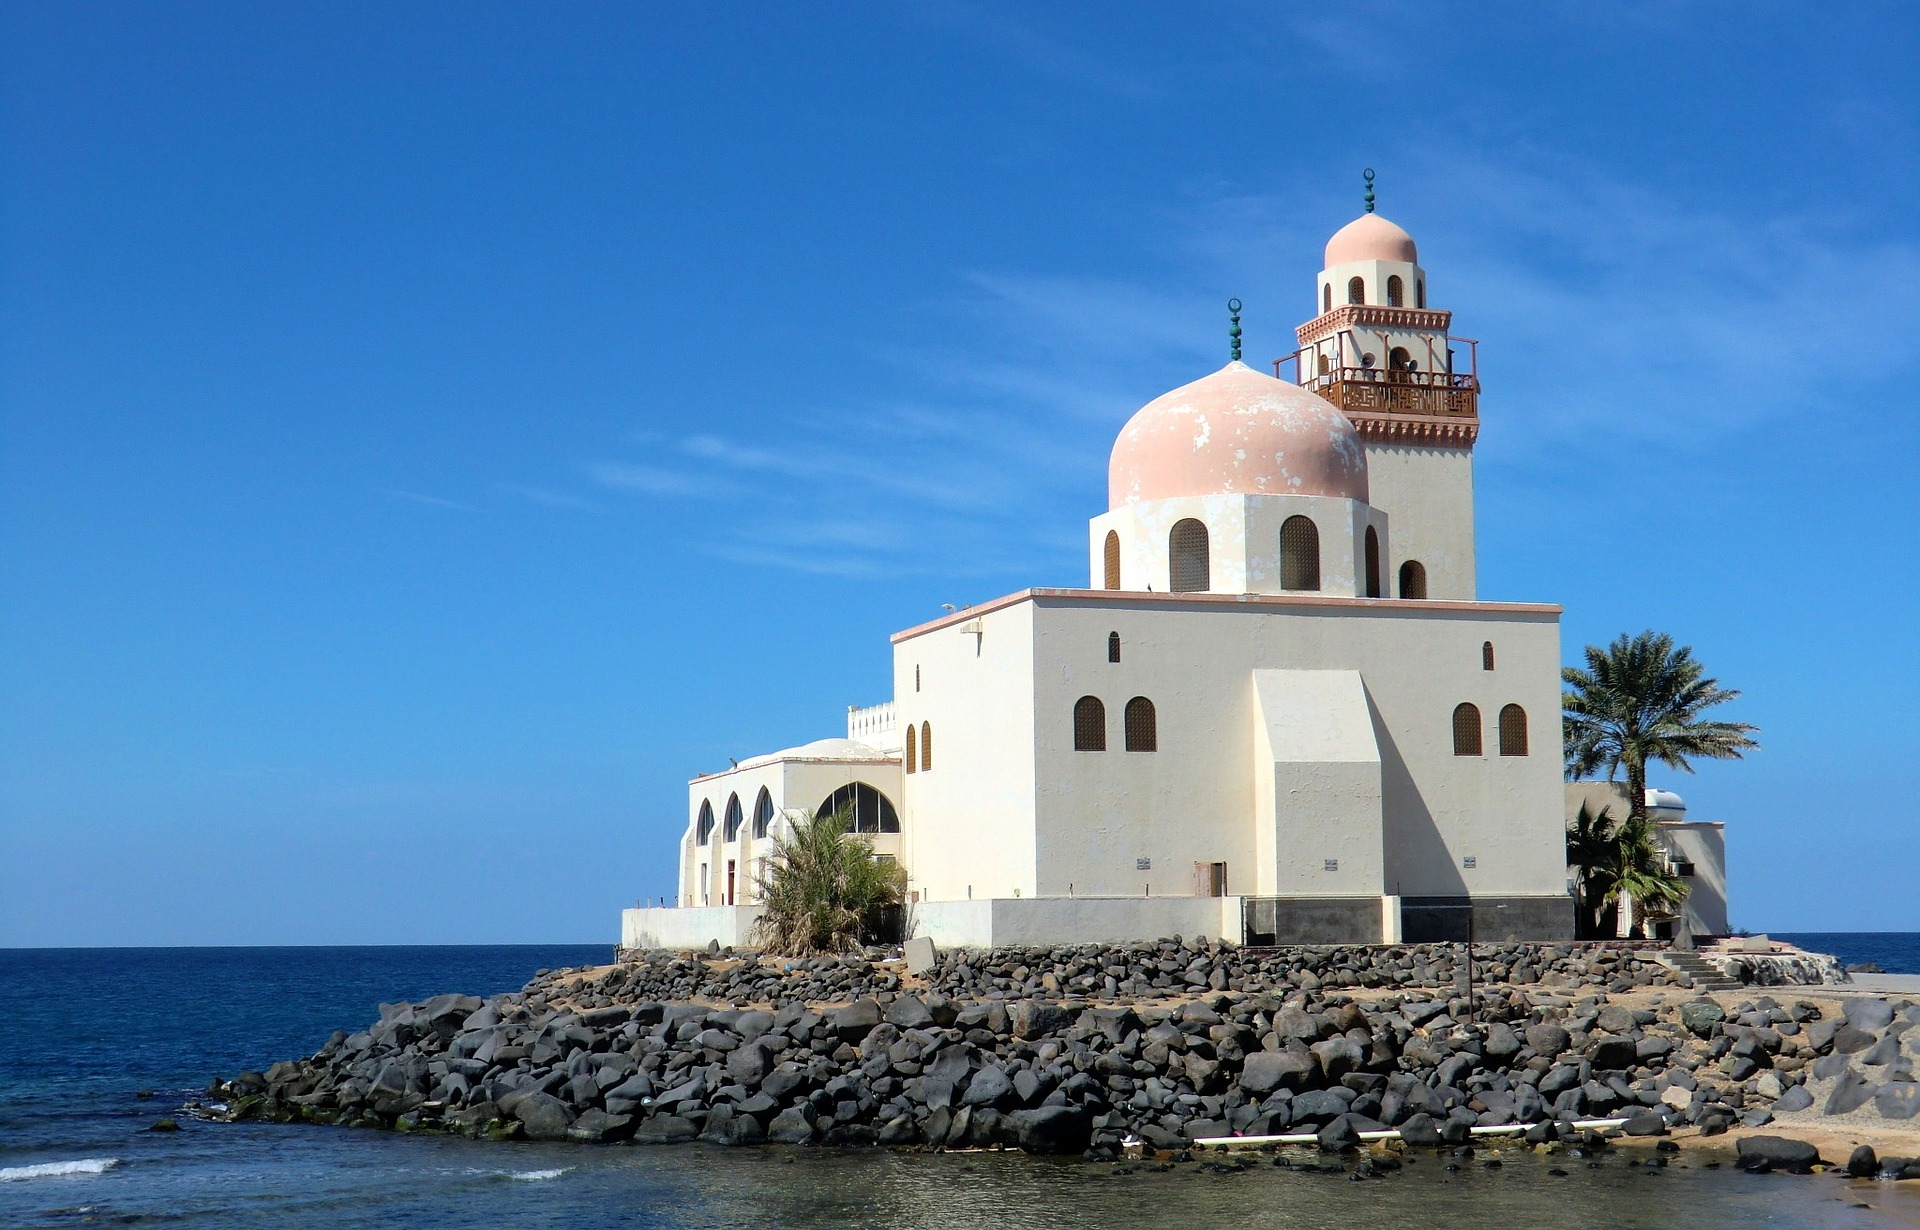 A white mosque on a rocky outcropping jutting into the sea.